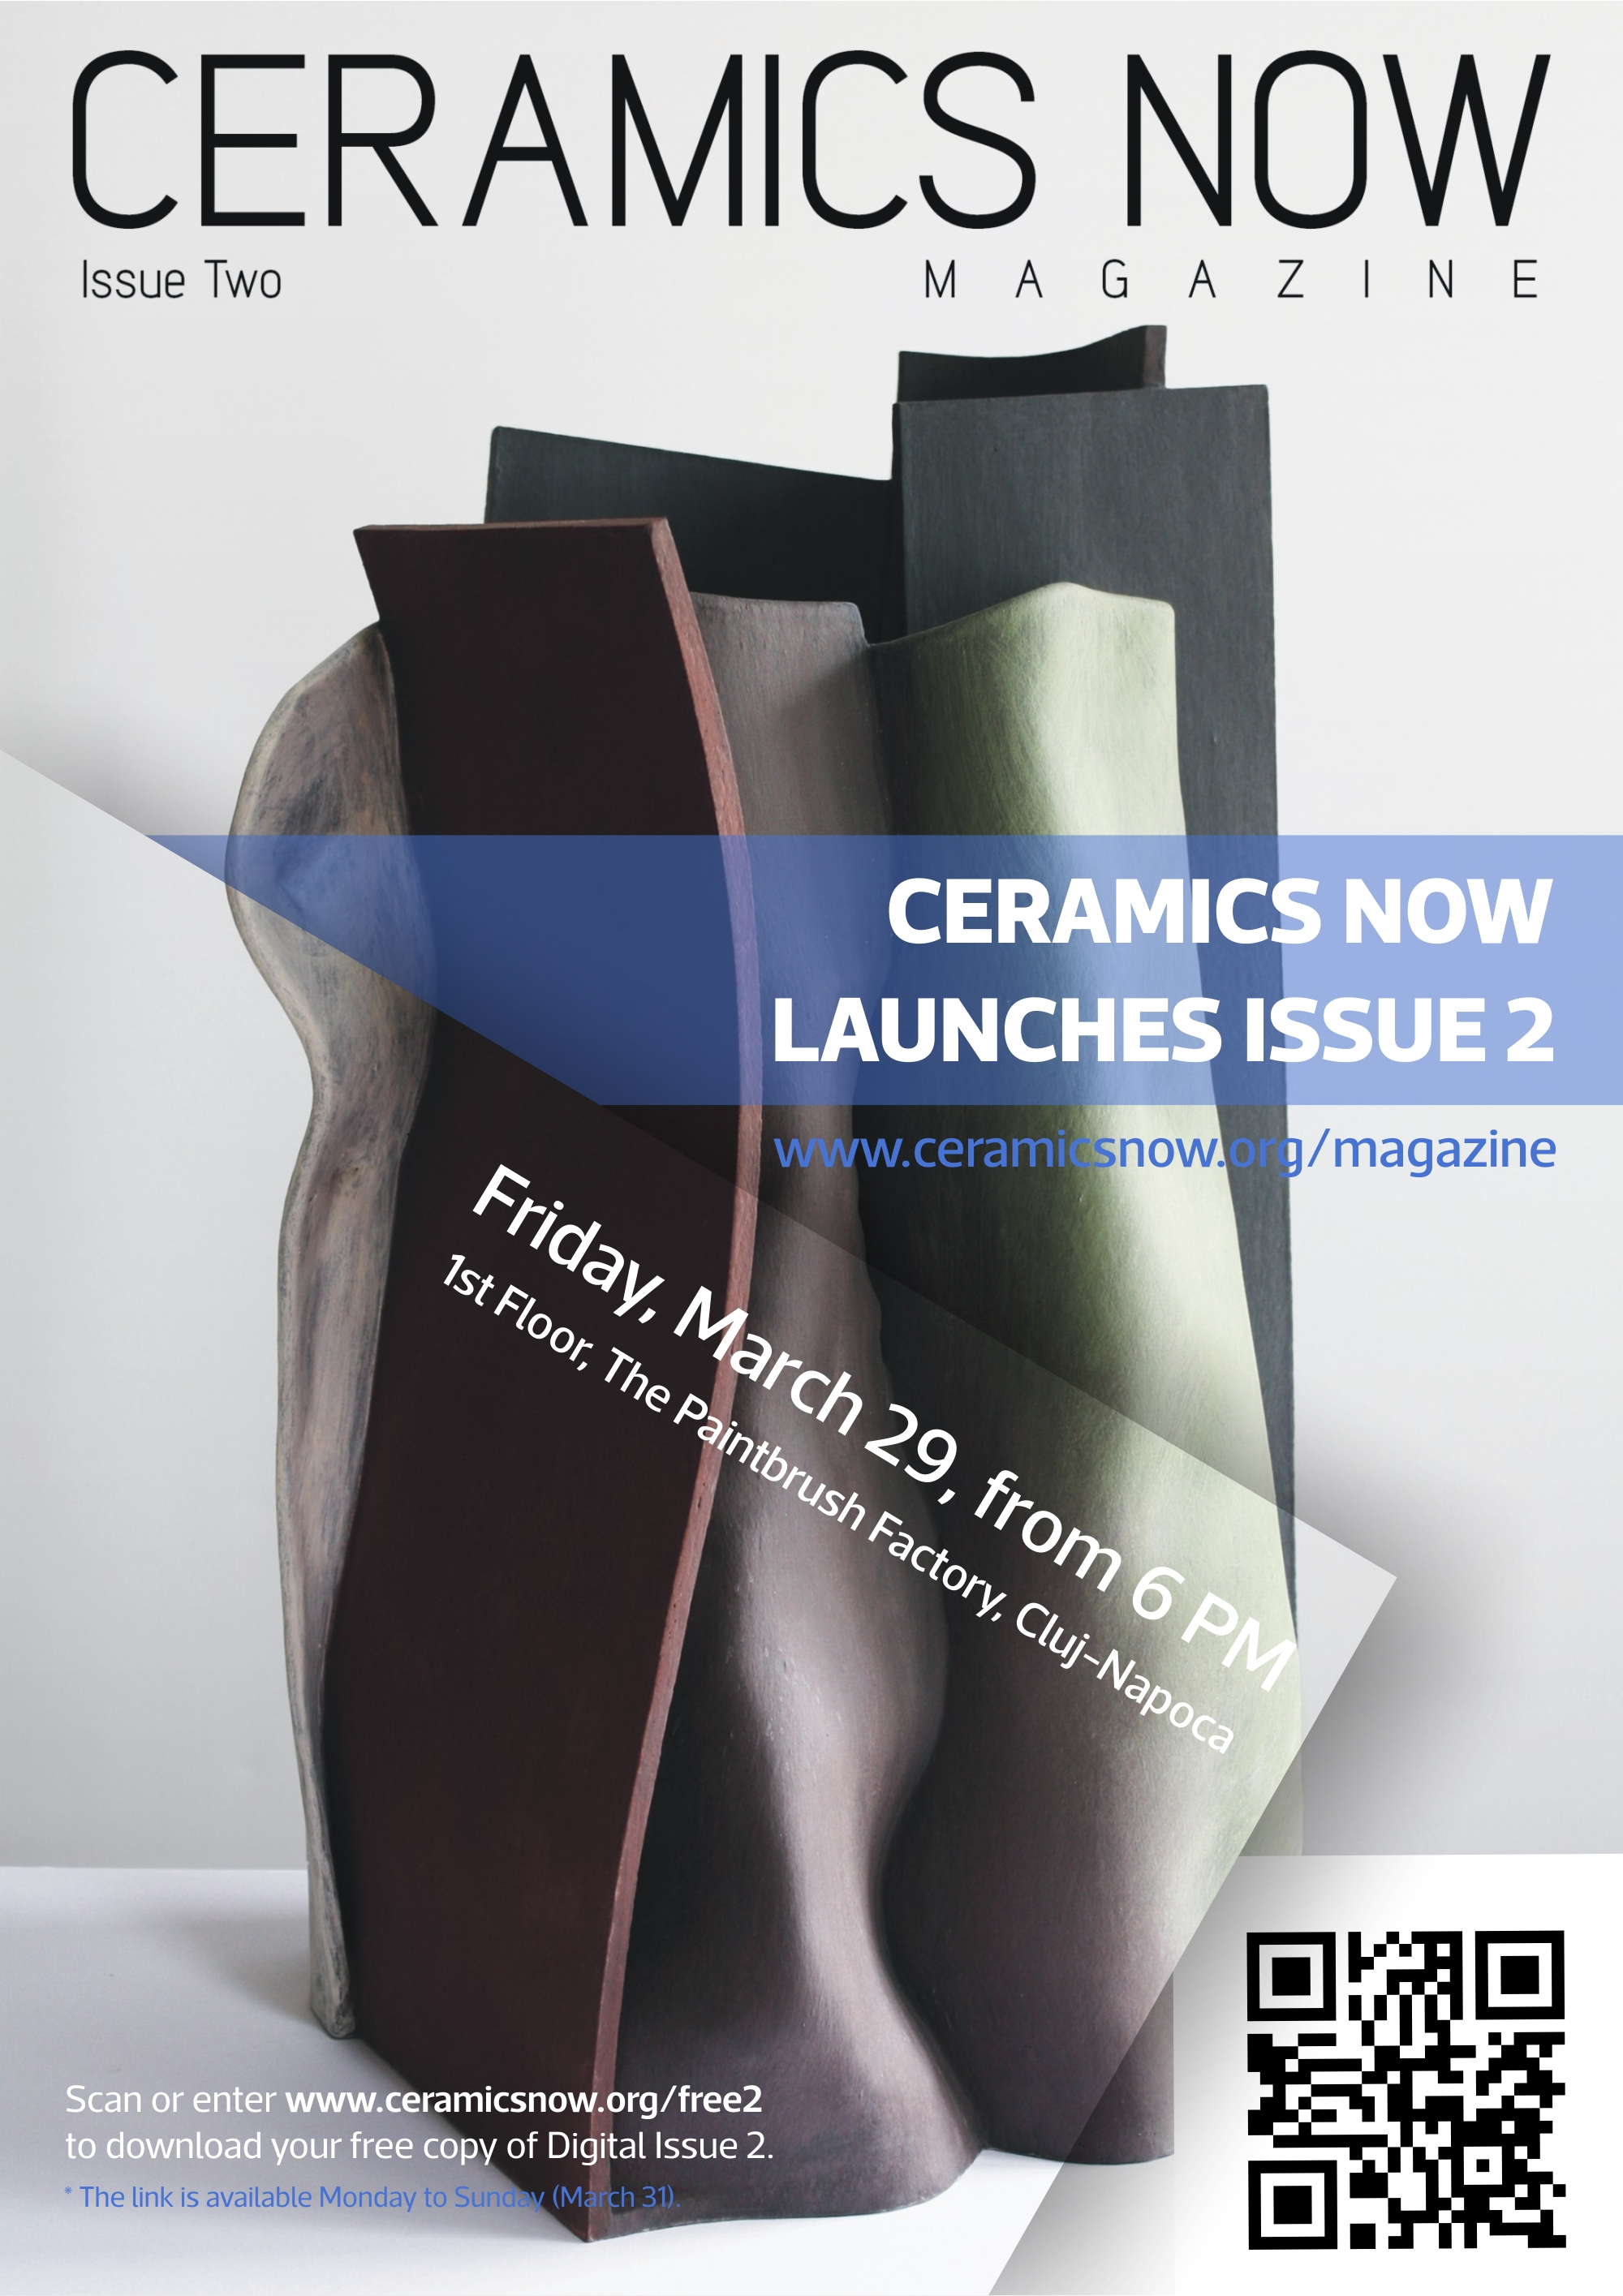 Ceramics Now Magazine launches Issue 2